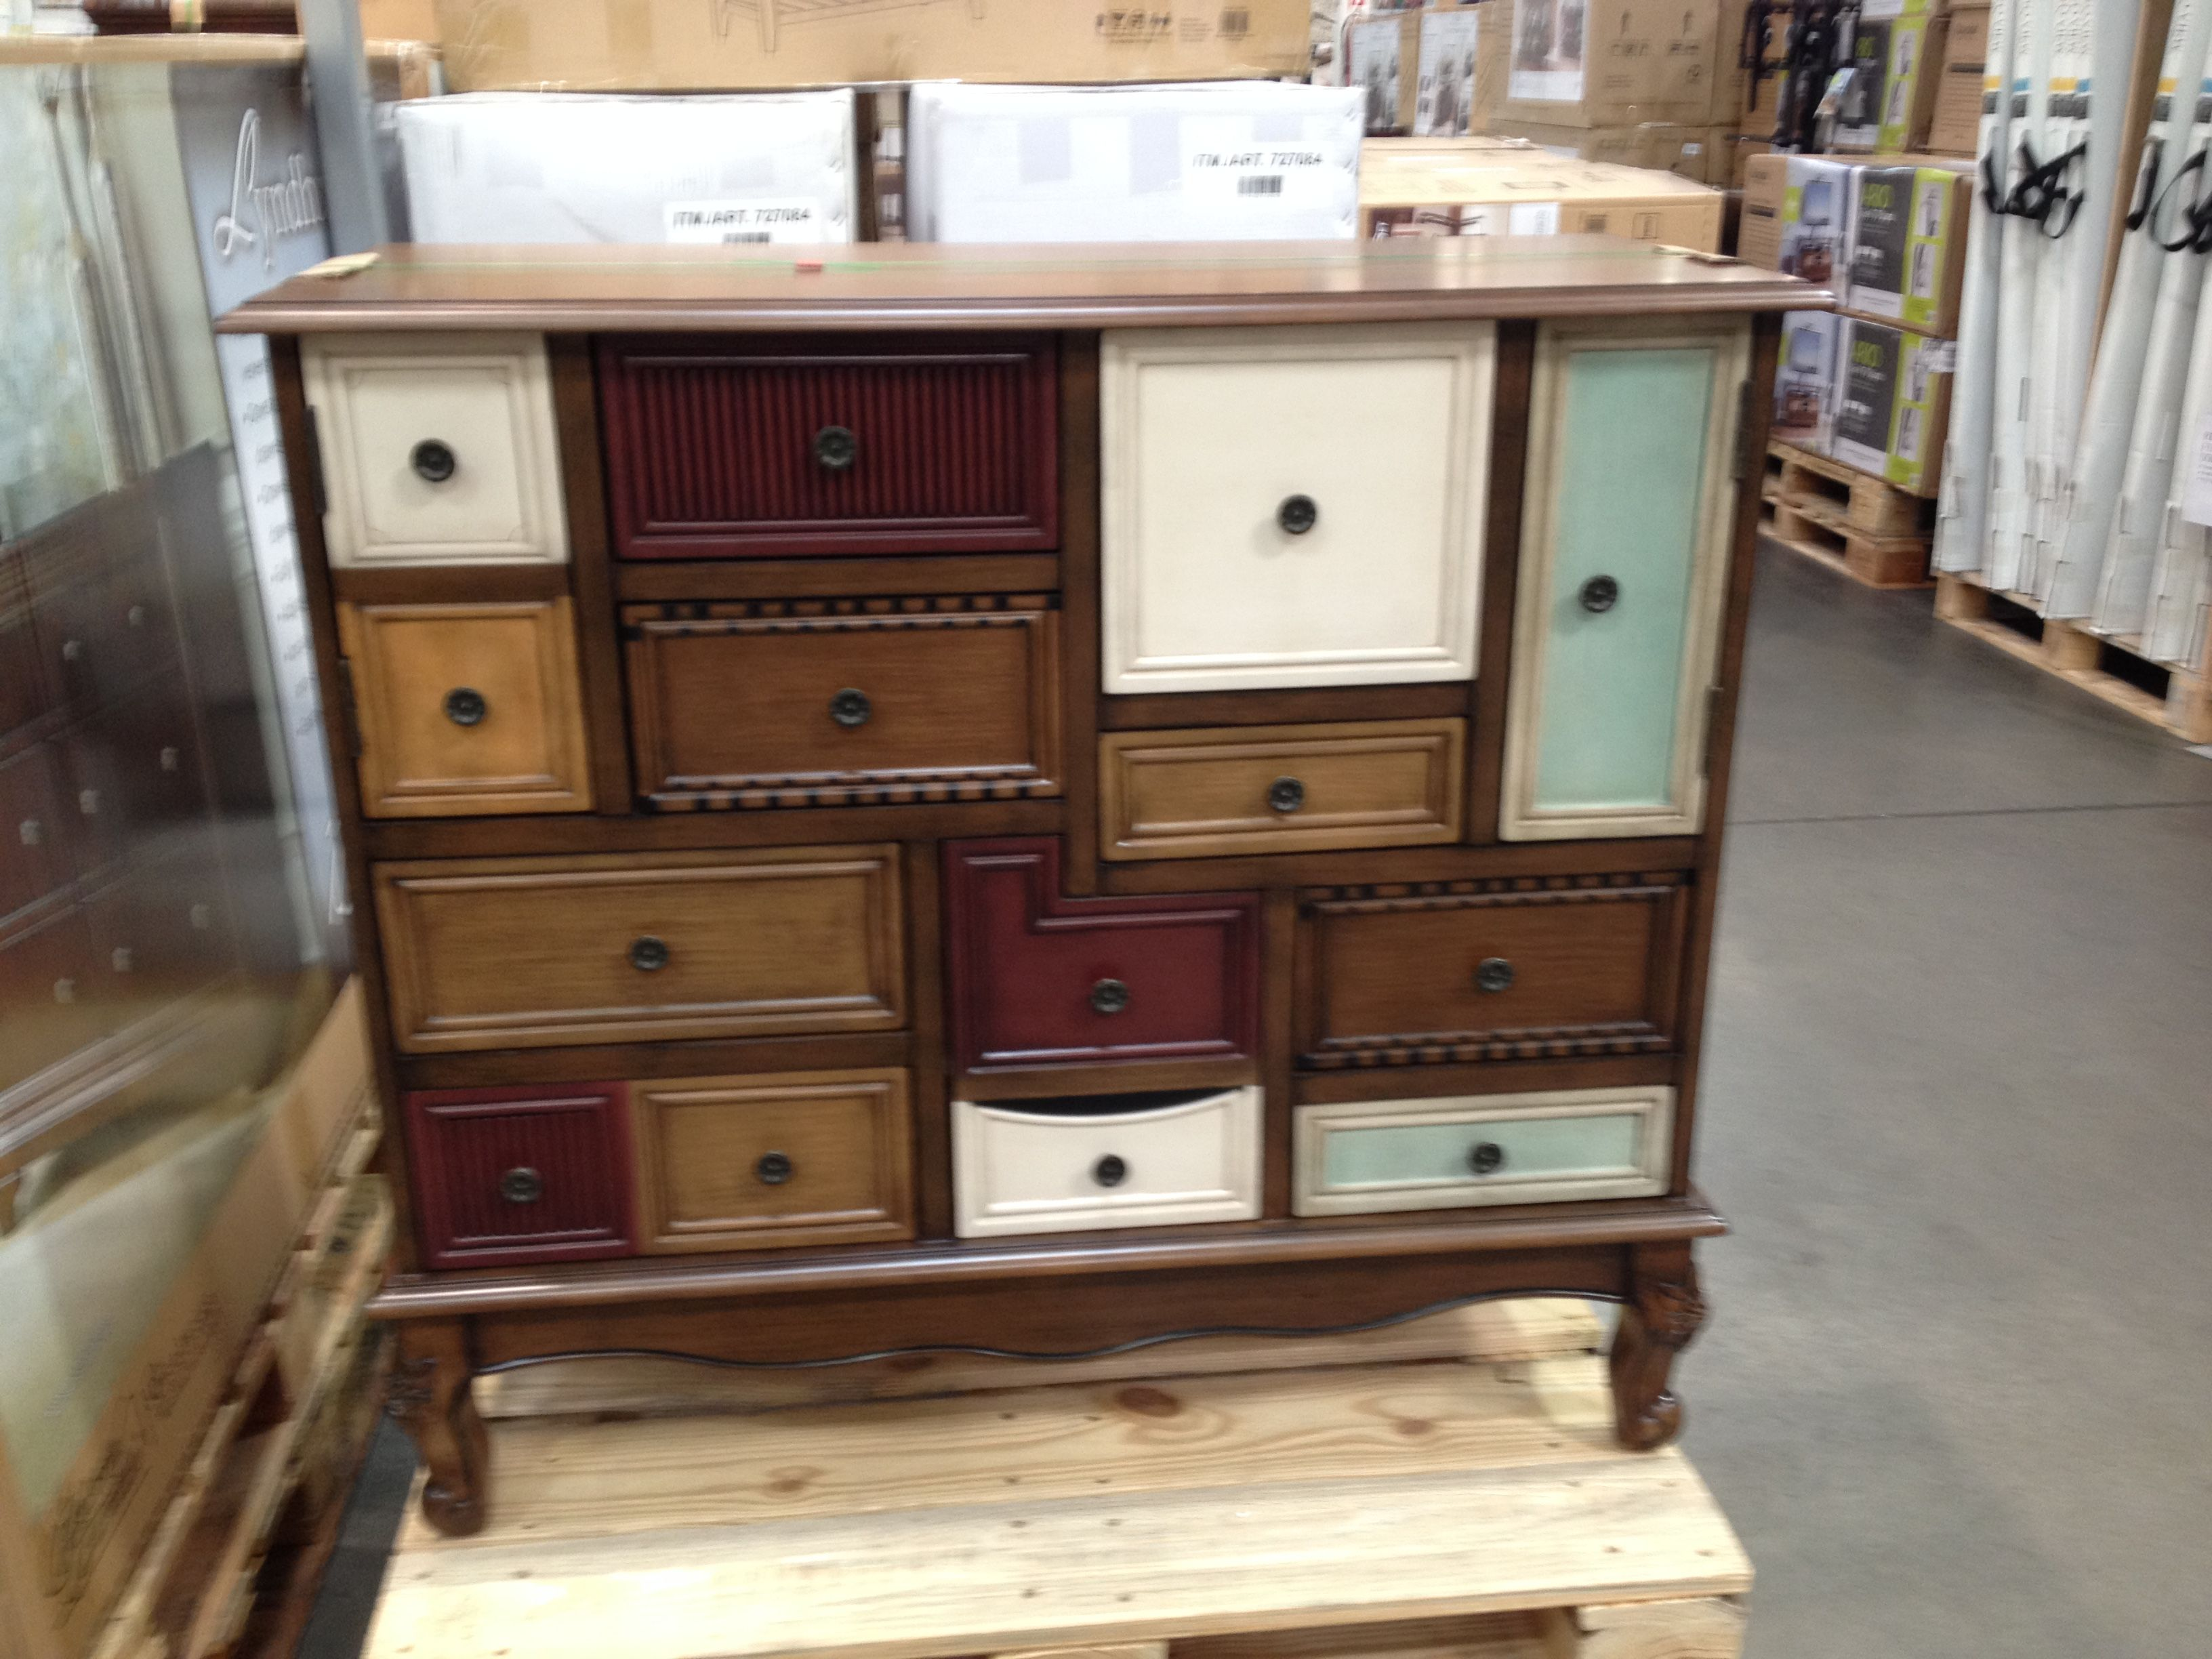 costco chest with all different sizes